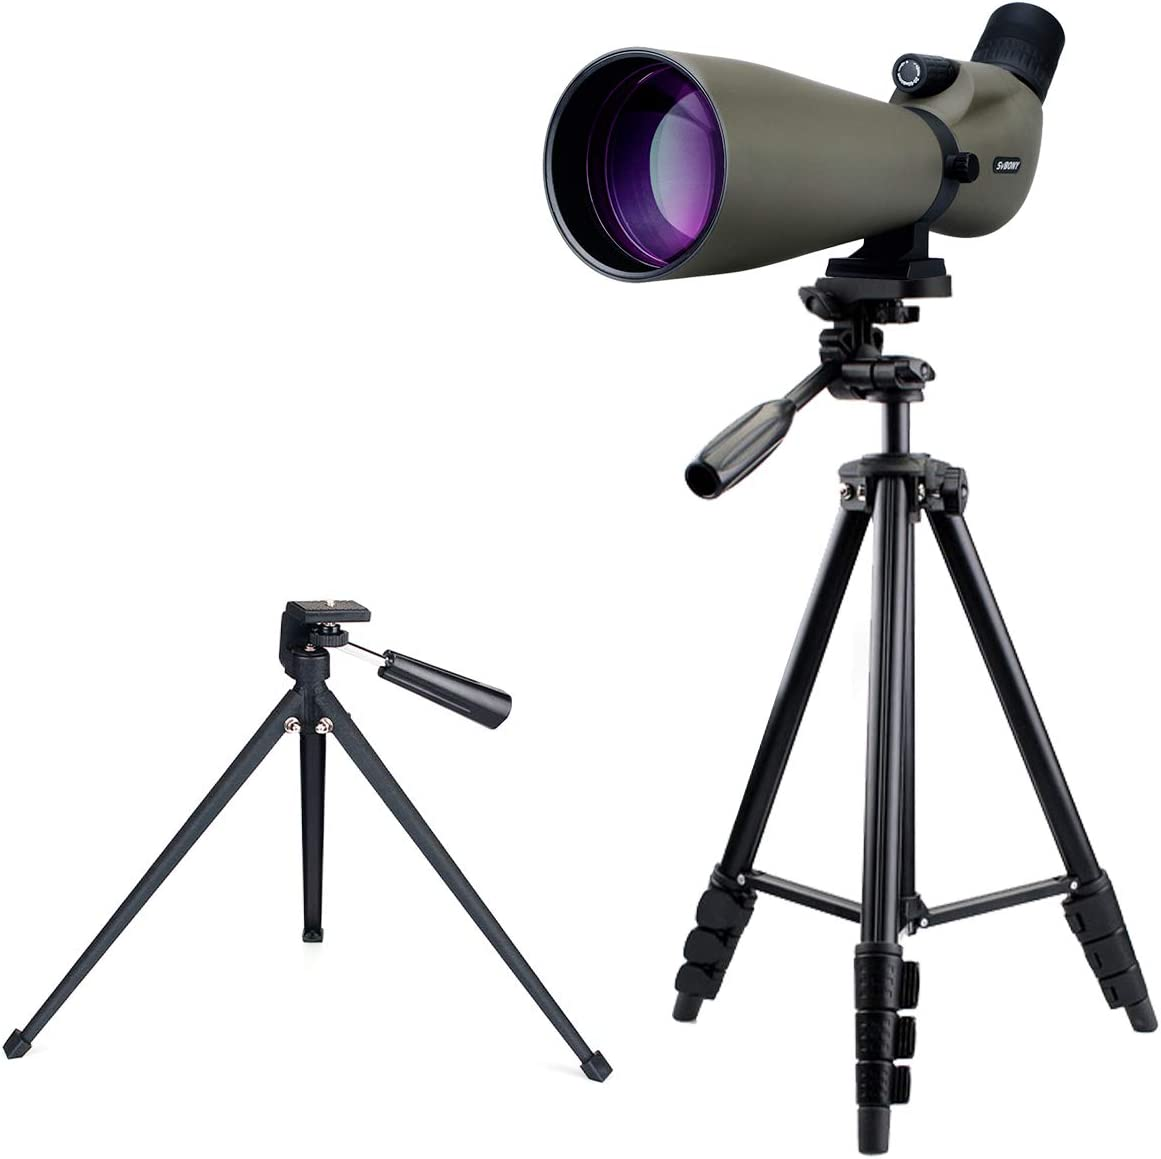 SVBONY SV401 Spotting Scope with Tripod IPX6 Waterproof 20-60x80mm 45 Degree Angled Eyepiece Prism FMC Coated Optical Lens for Target Shooting Bird Watching